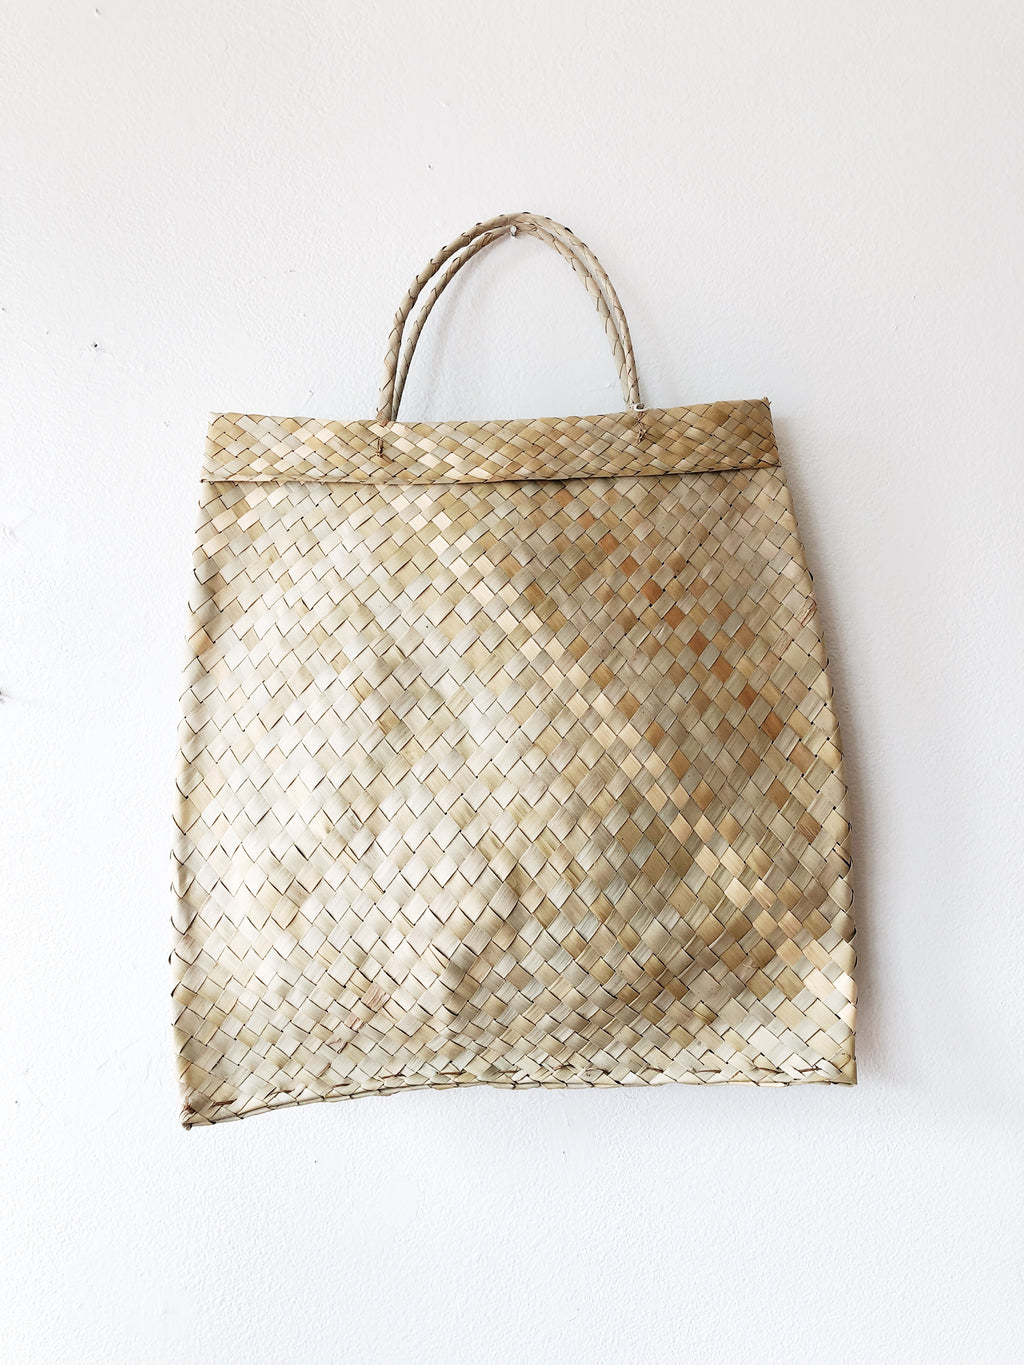 Vintage Straw Envelope Tote Bag